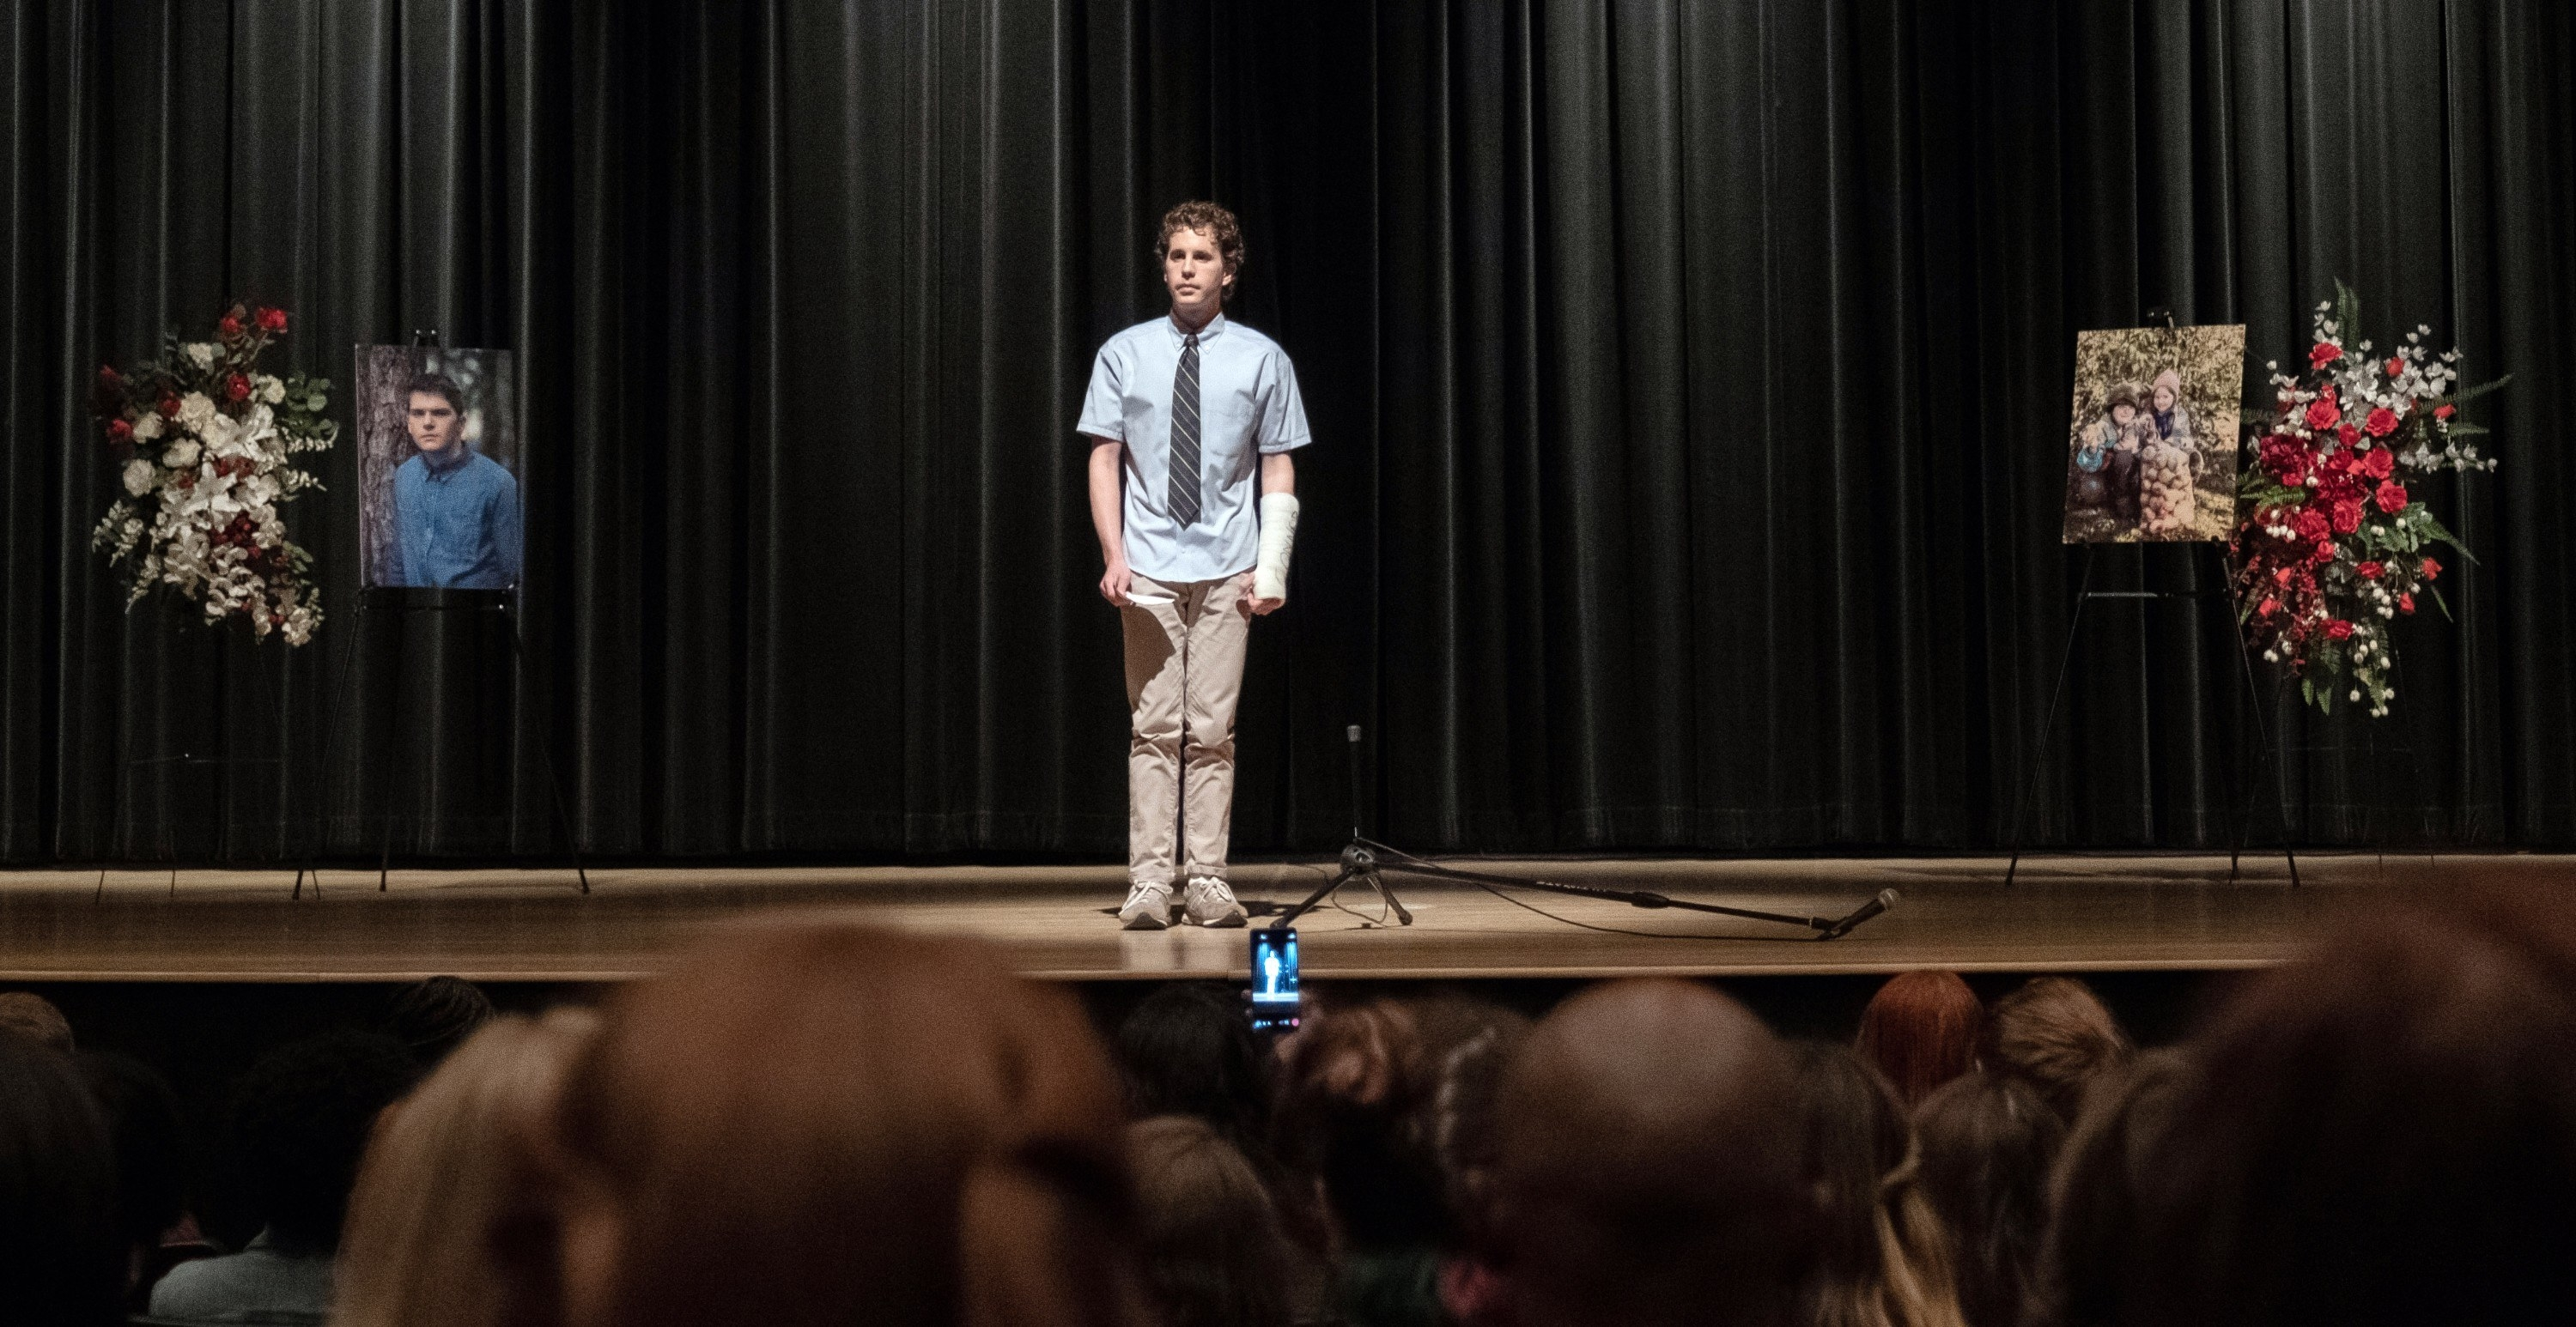 Evan Hansen standing at the mic in a school auditorium with pictures of a fellow student who has died off to the sides